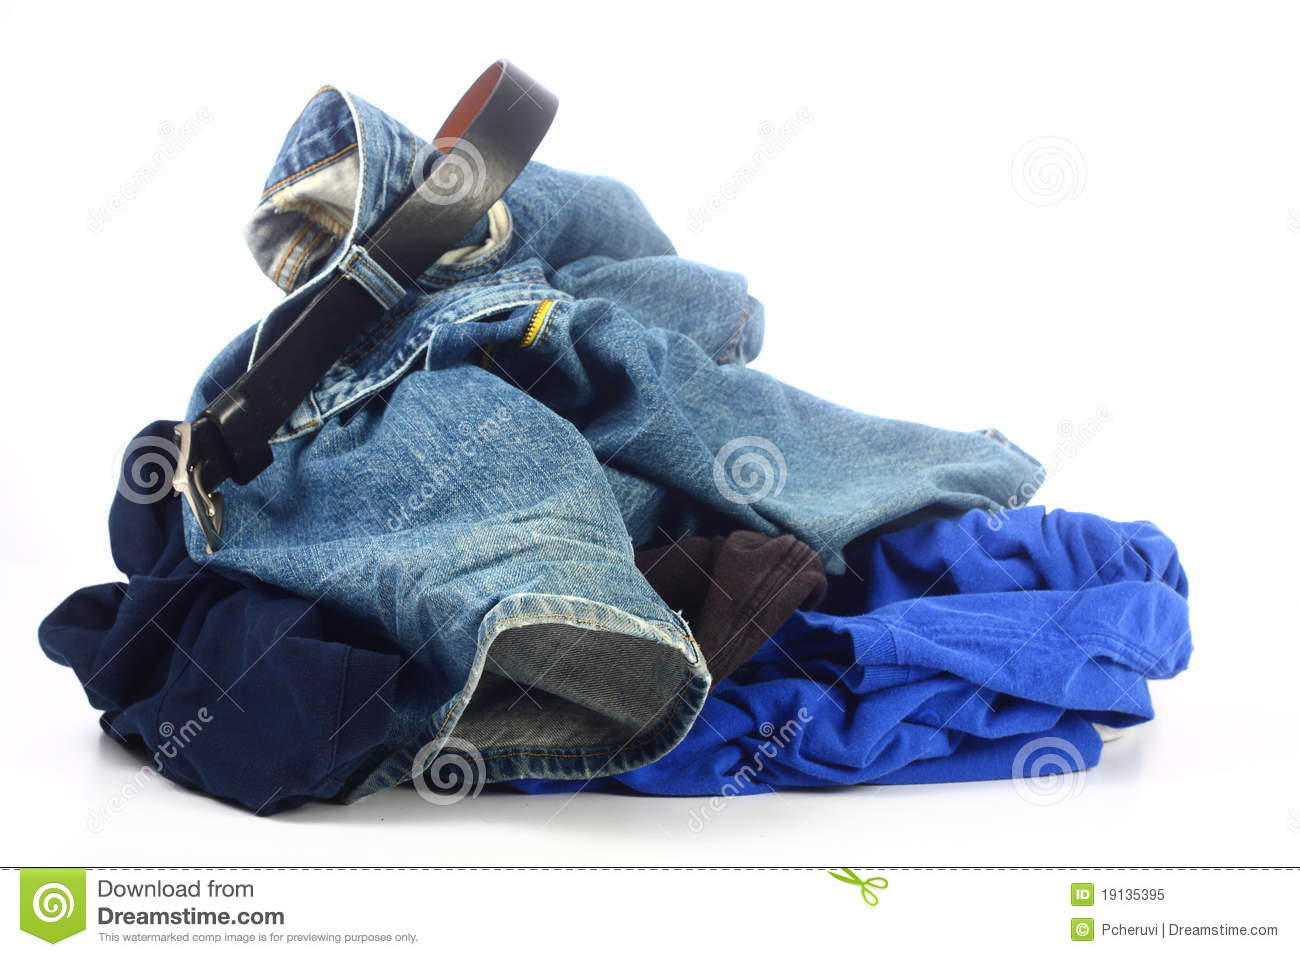 Pile Of Messy Clothes Royalty Free Stock Photo - Image: 19135395